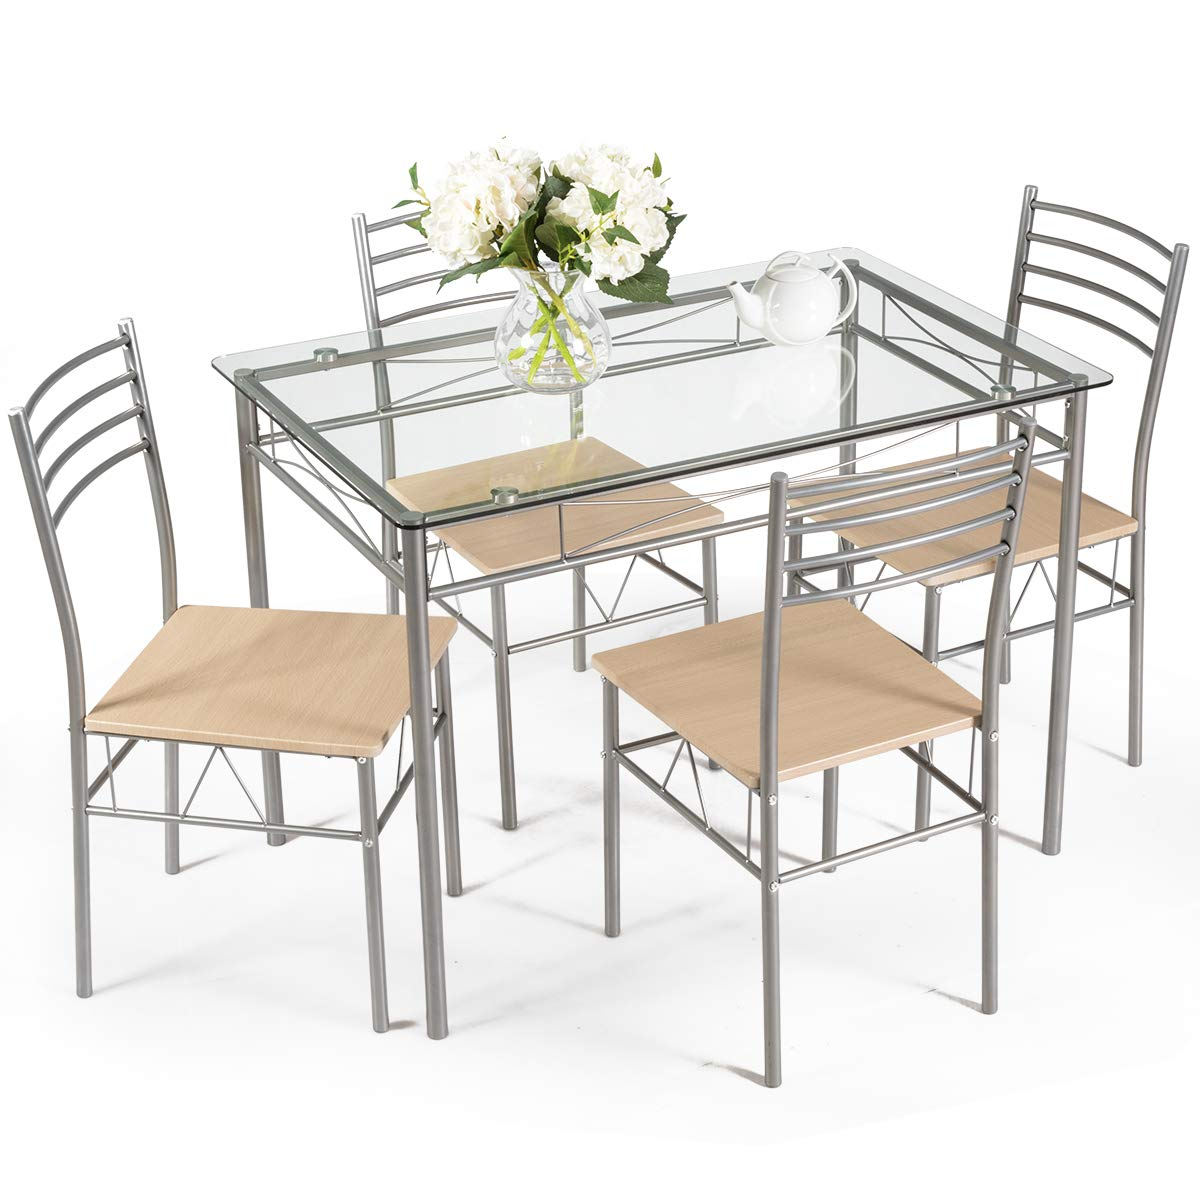 Giantex 5 Piece Dining Set Table and 4 Chairs Glass Top Kitchen Breakfast Furniture by Giantex